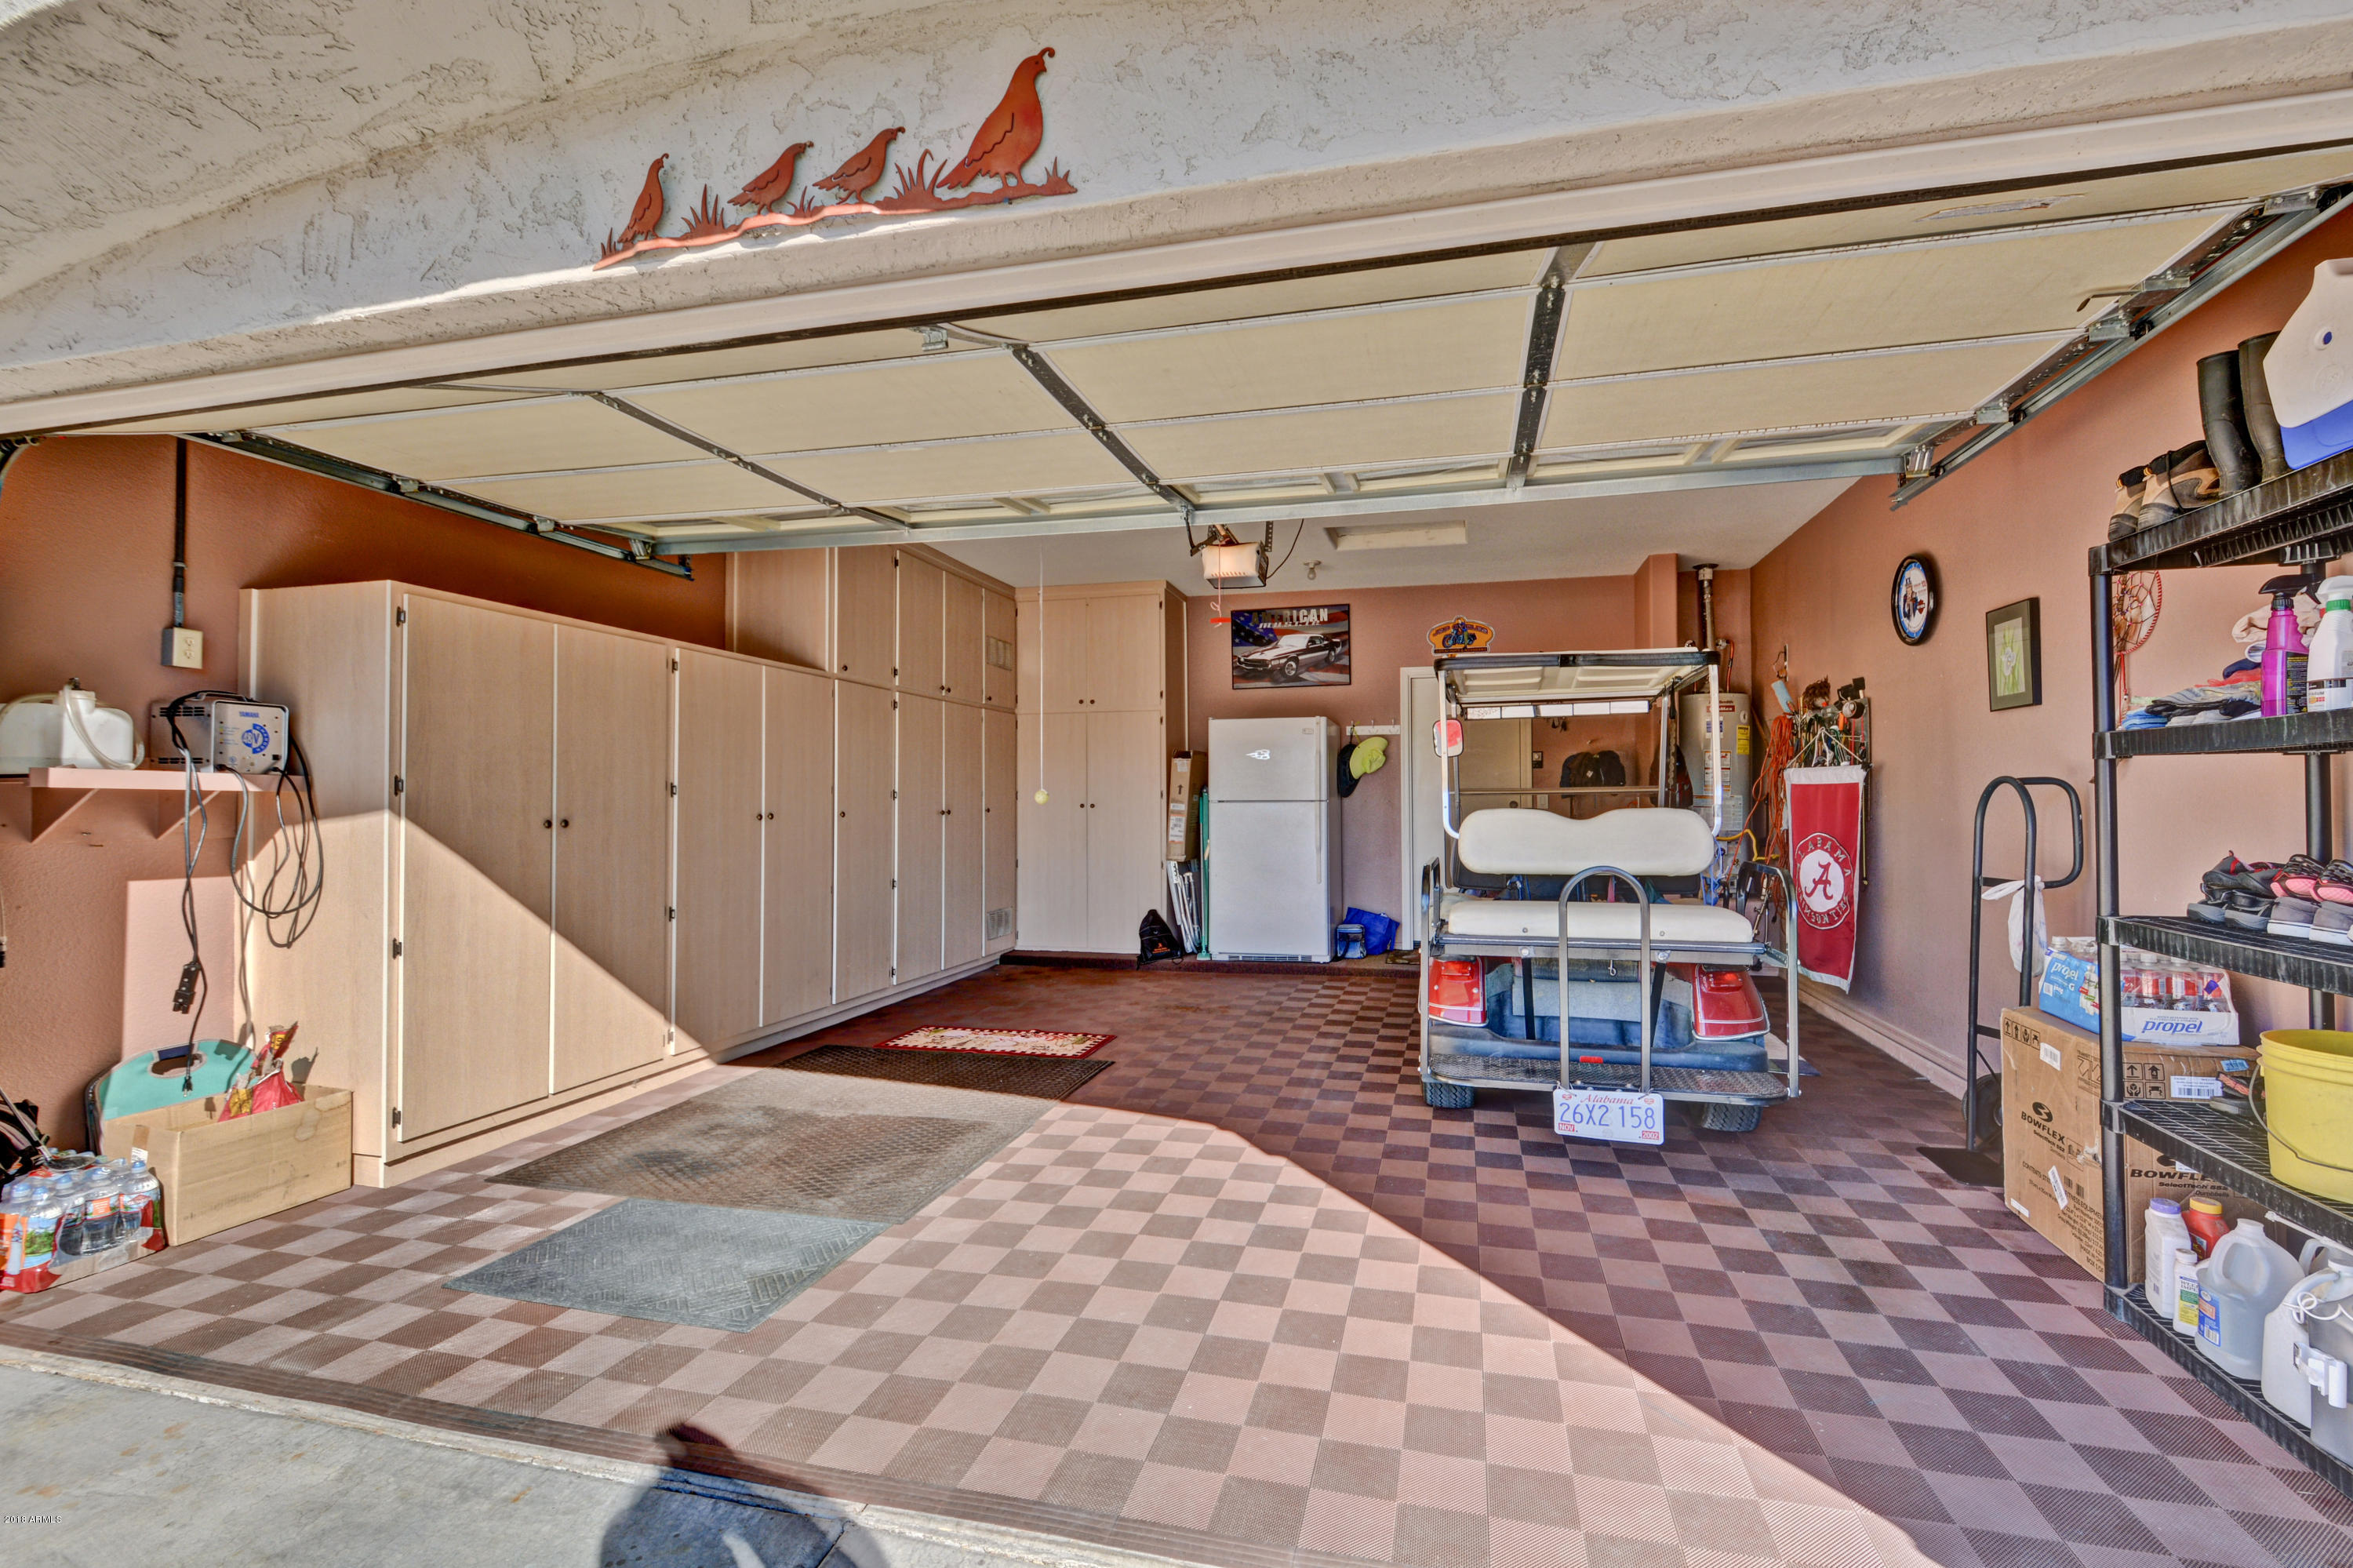 MLS 5843609 17974 W CAMINO REAL Drive, Surprise, AZ 85374 Surprise AZ Arizona Traditions